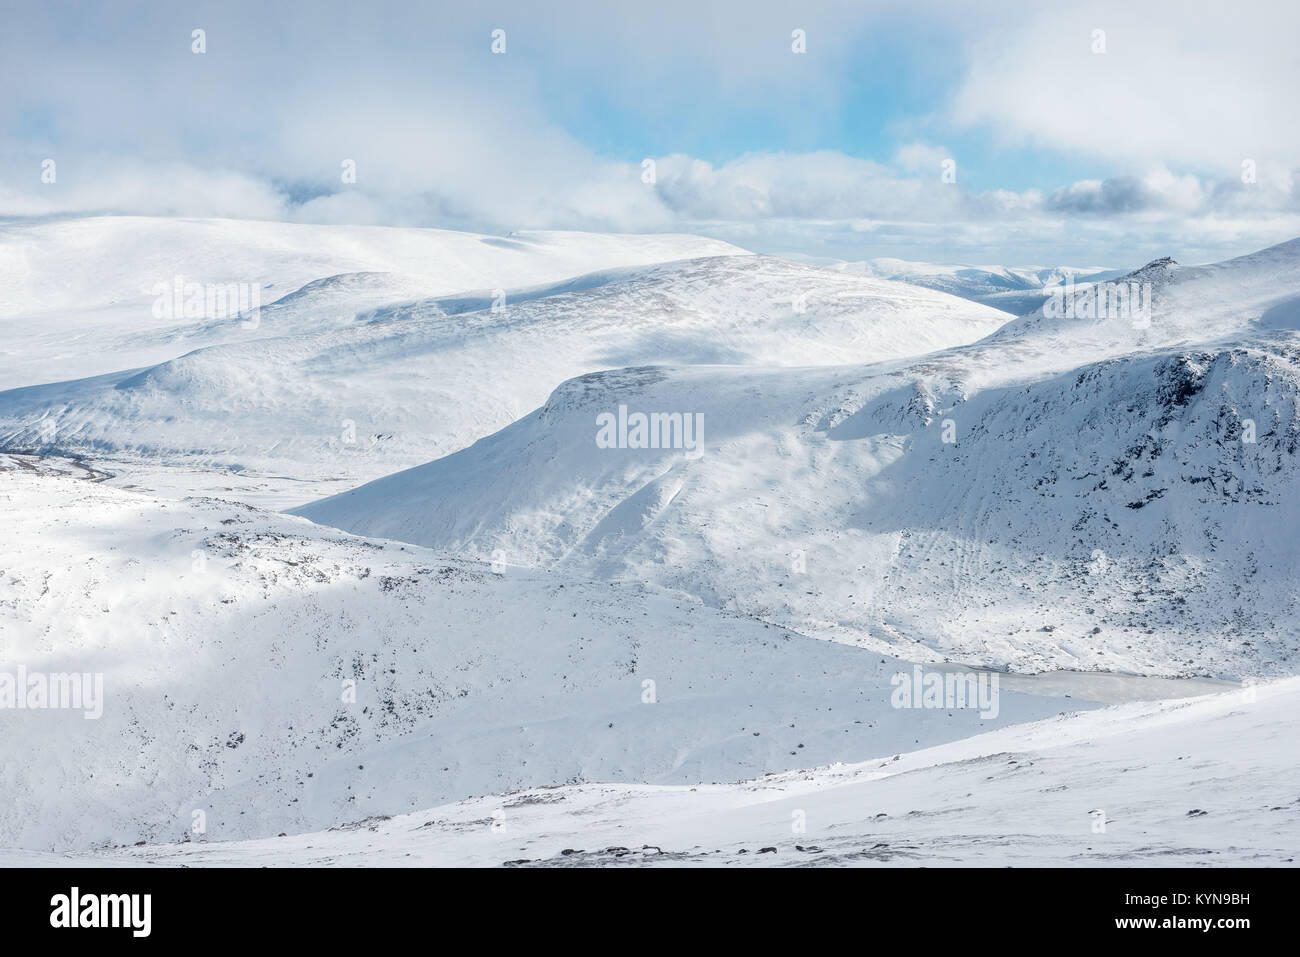 Looking east from Cairn Gorm mountain across the wilderness of the snow covered Cairngorm mountain range - Stock Image